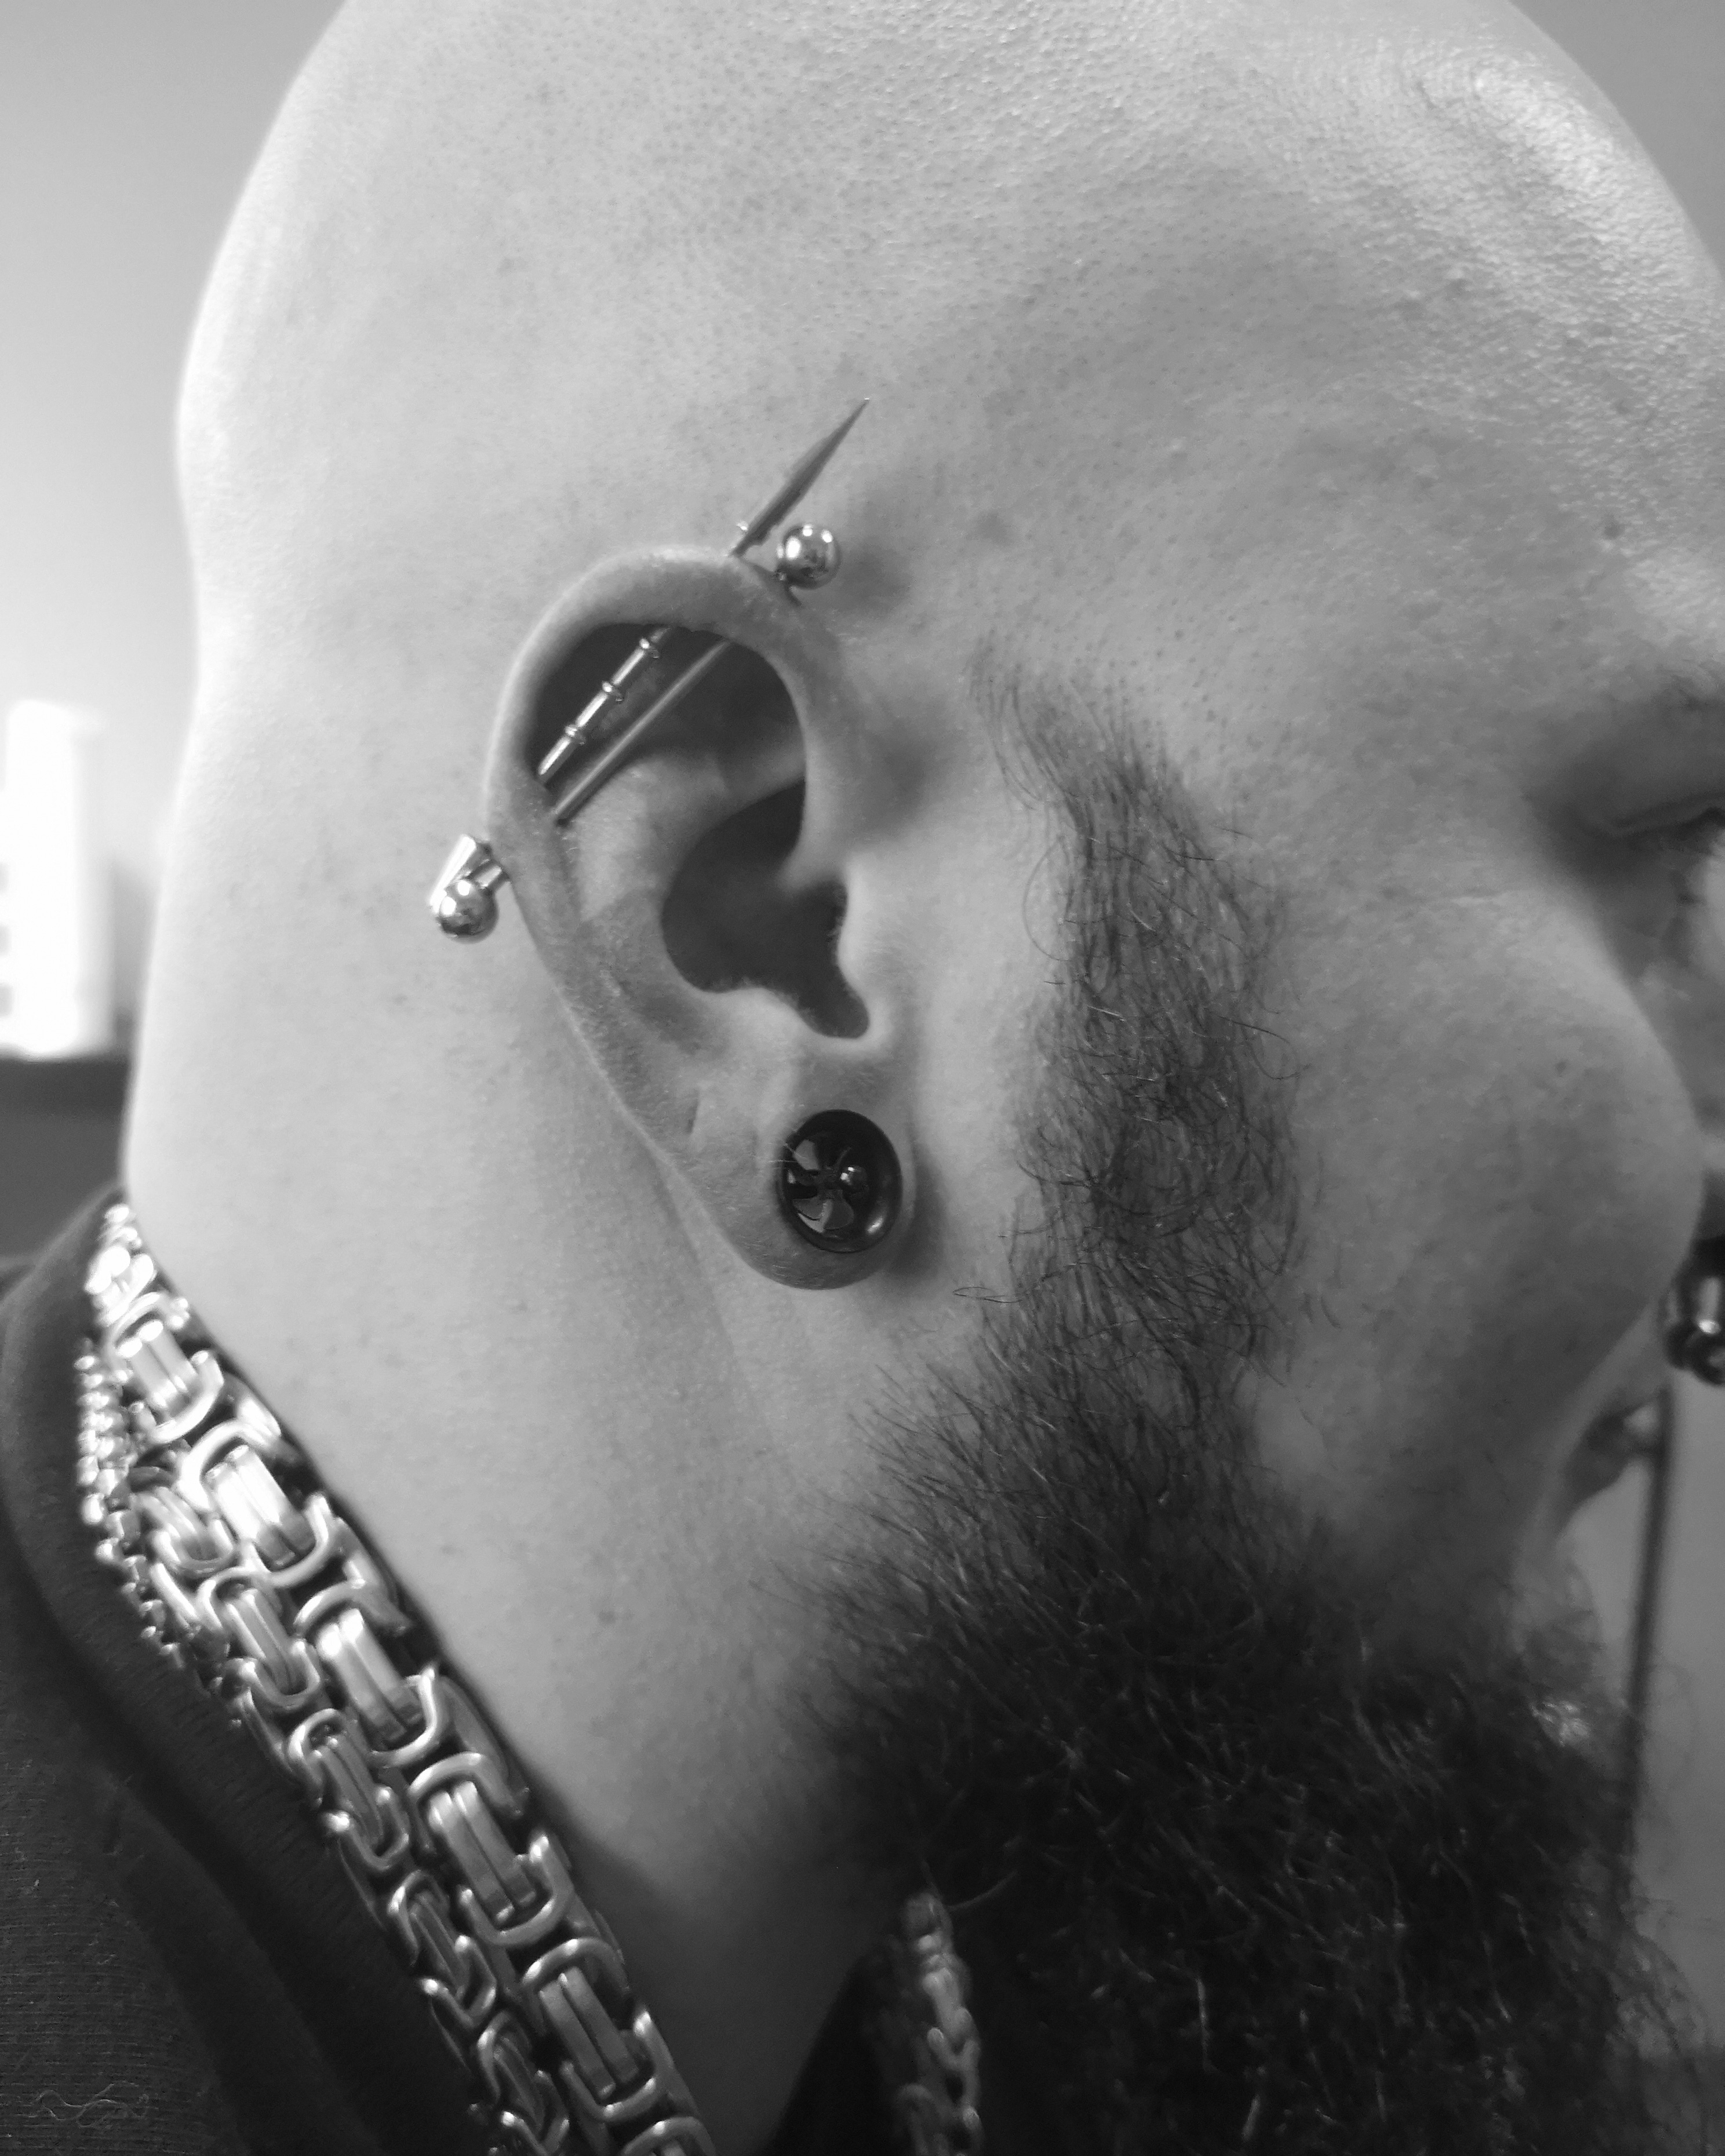 Piercingschmuck-Hamburg-Piercings-Hamburg